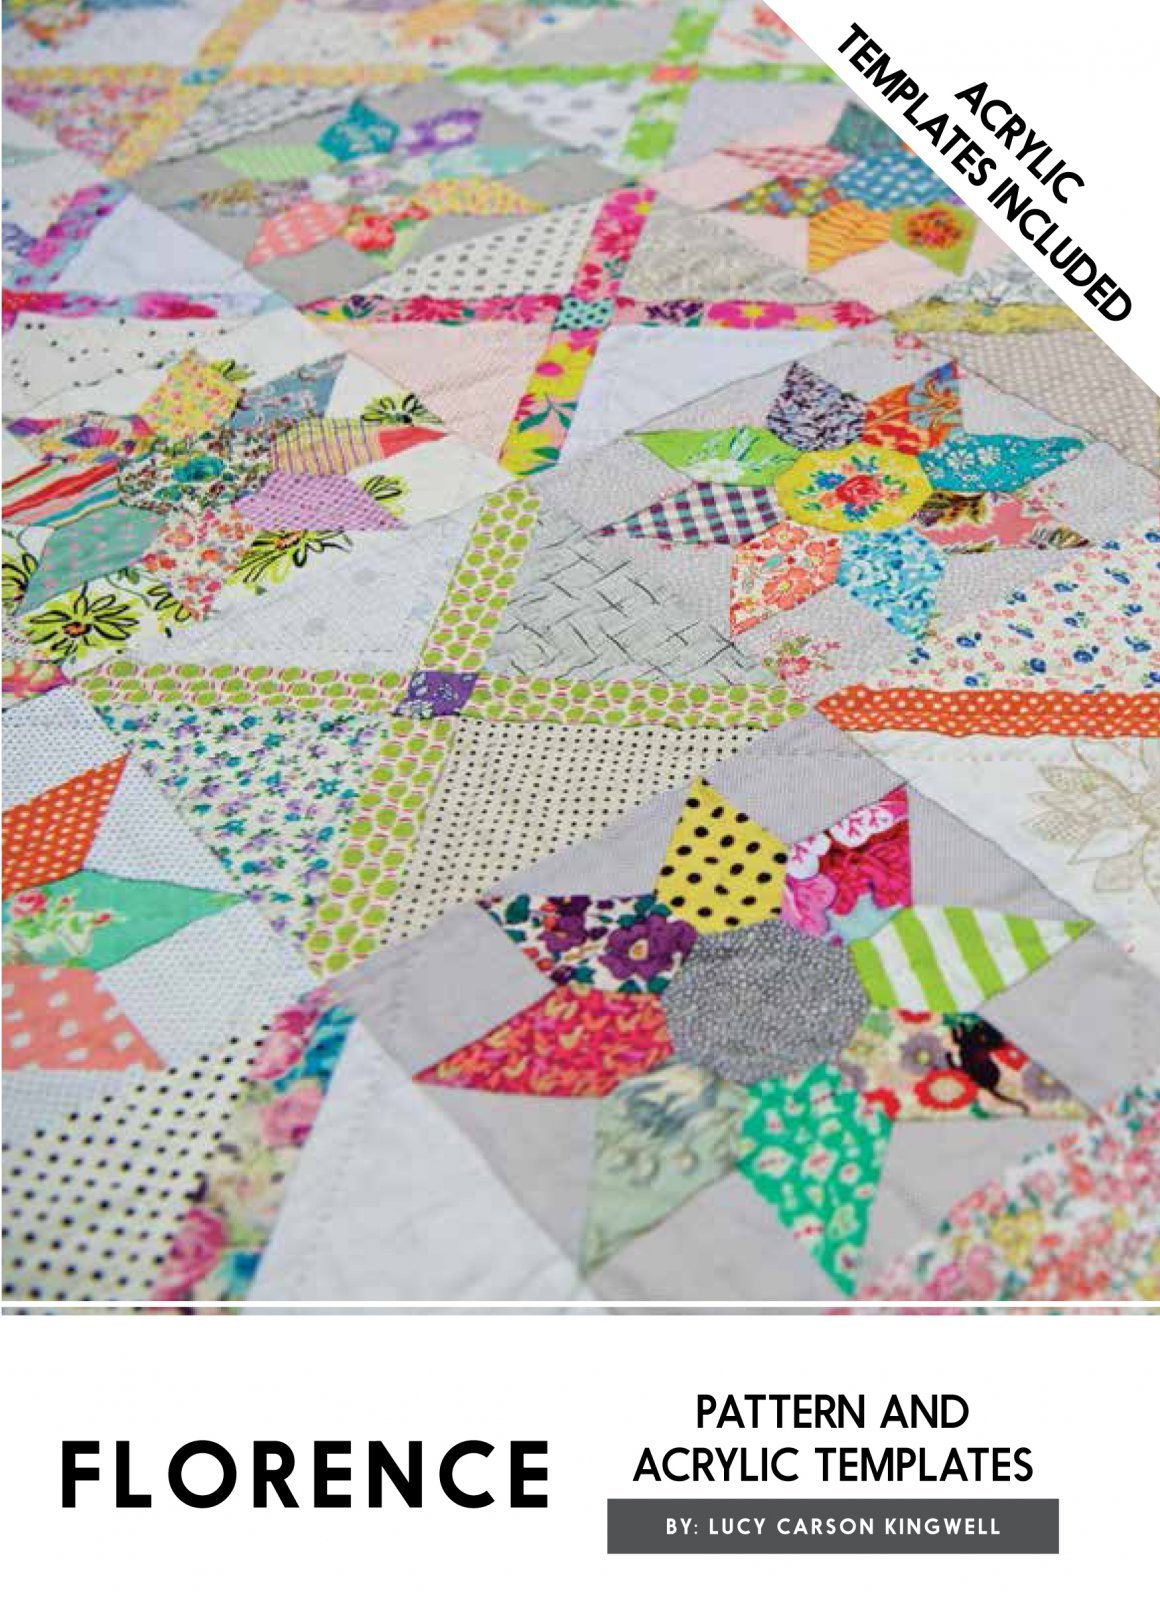 Florence Pattern Acrylic Templates Instructions Jen Kingwell Quilting by Jen Kingwell